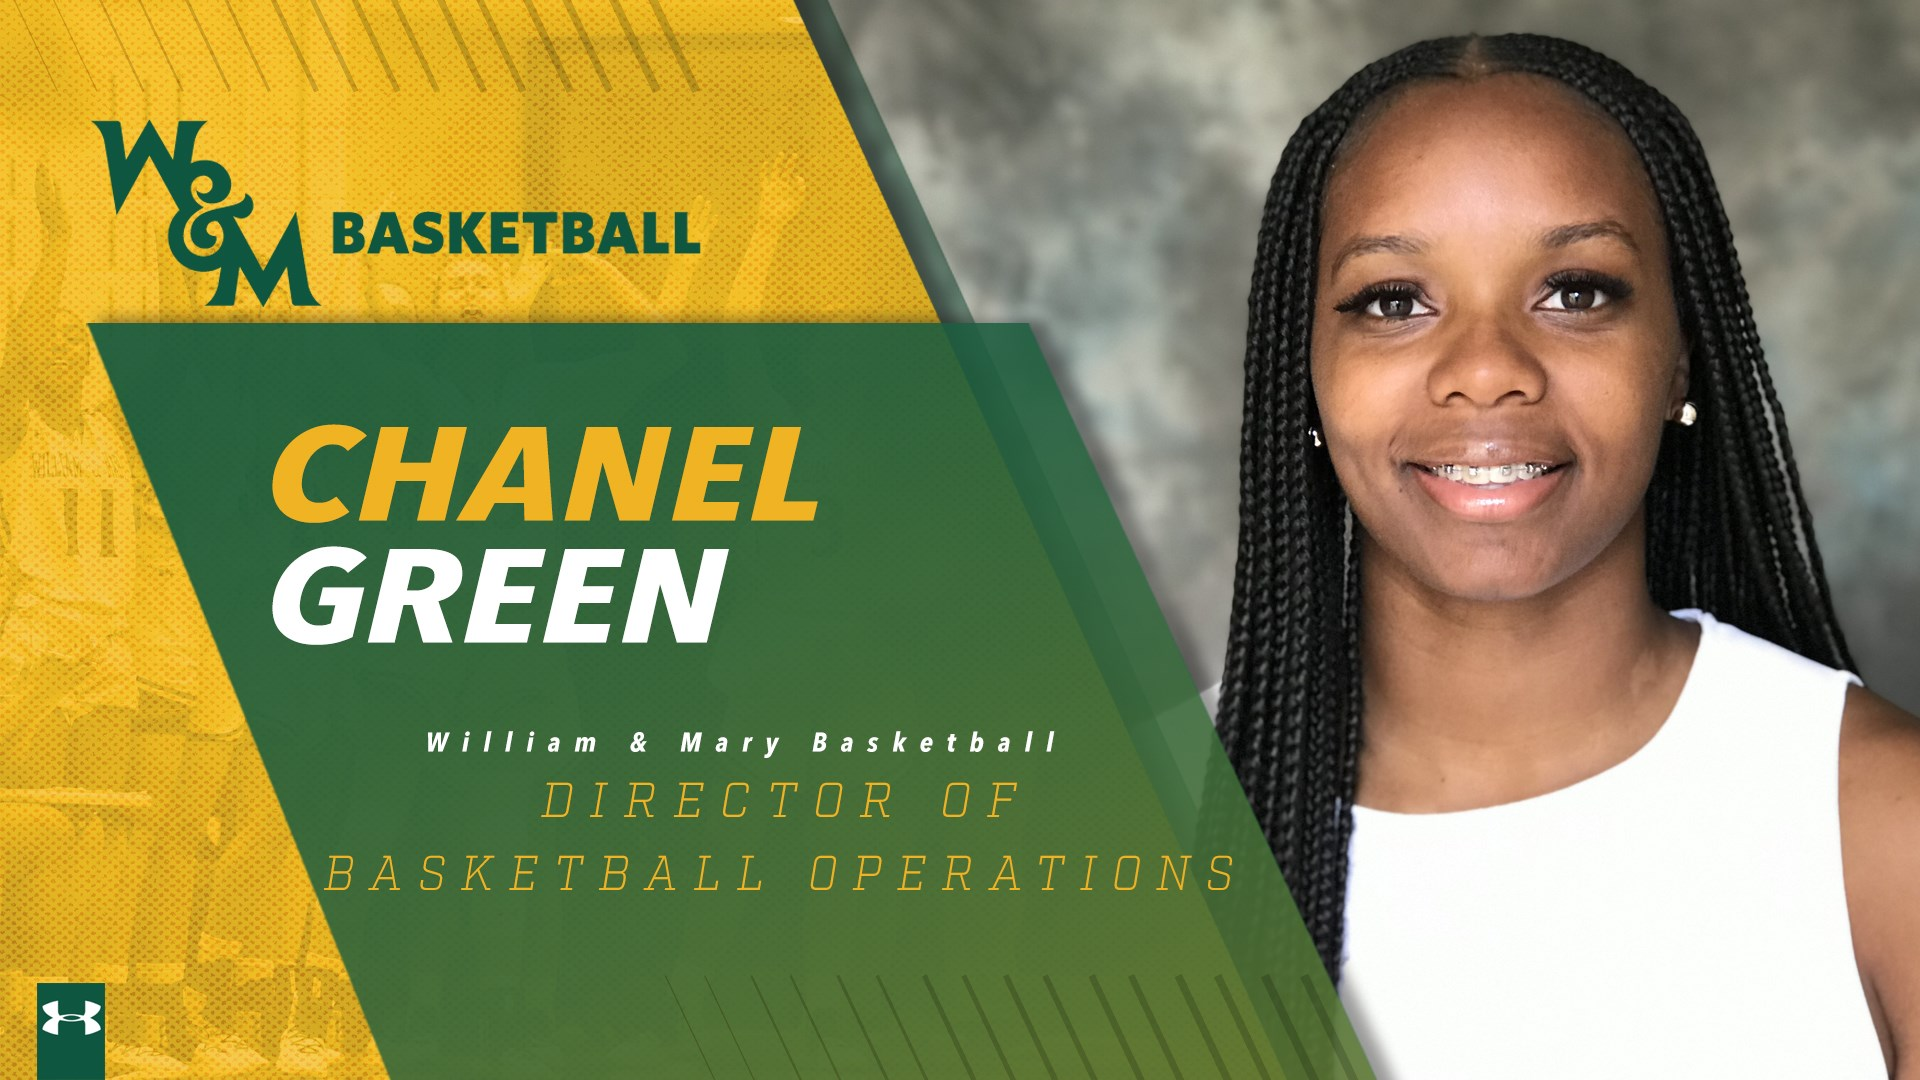 William & Mary Announces Hiring of Chanel Green as Director of Basketball Operations - Women's Hoop Dirt